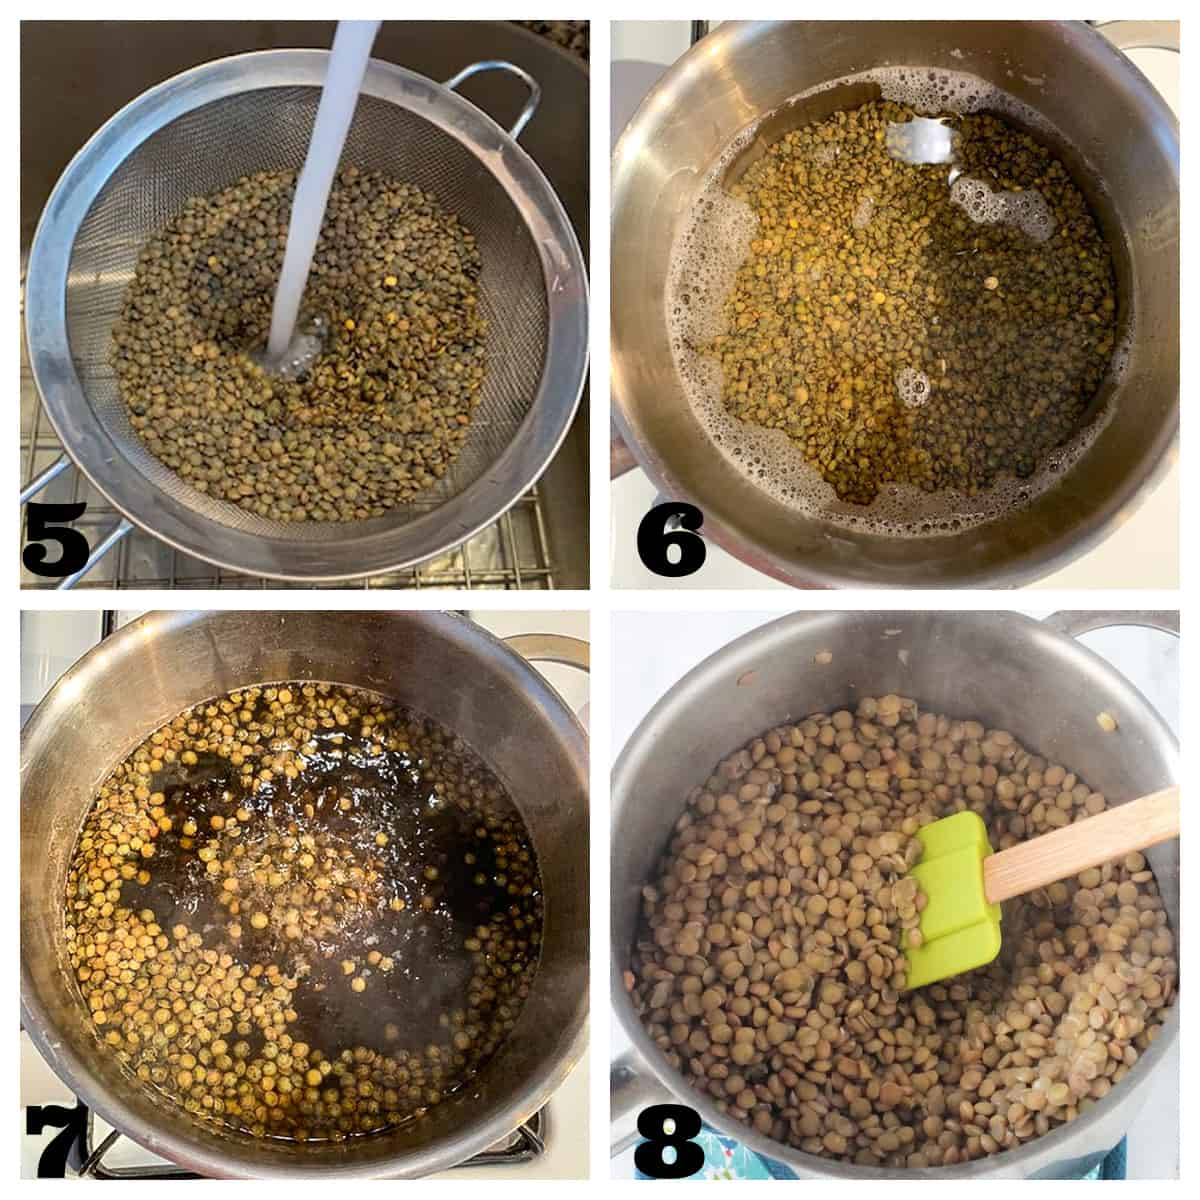 4 photo collage of rinsing and cooking lentils.